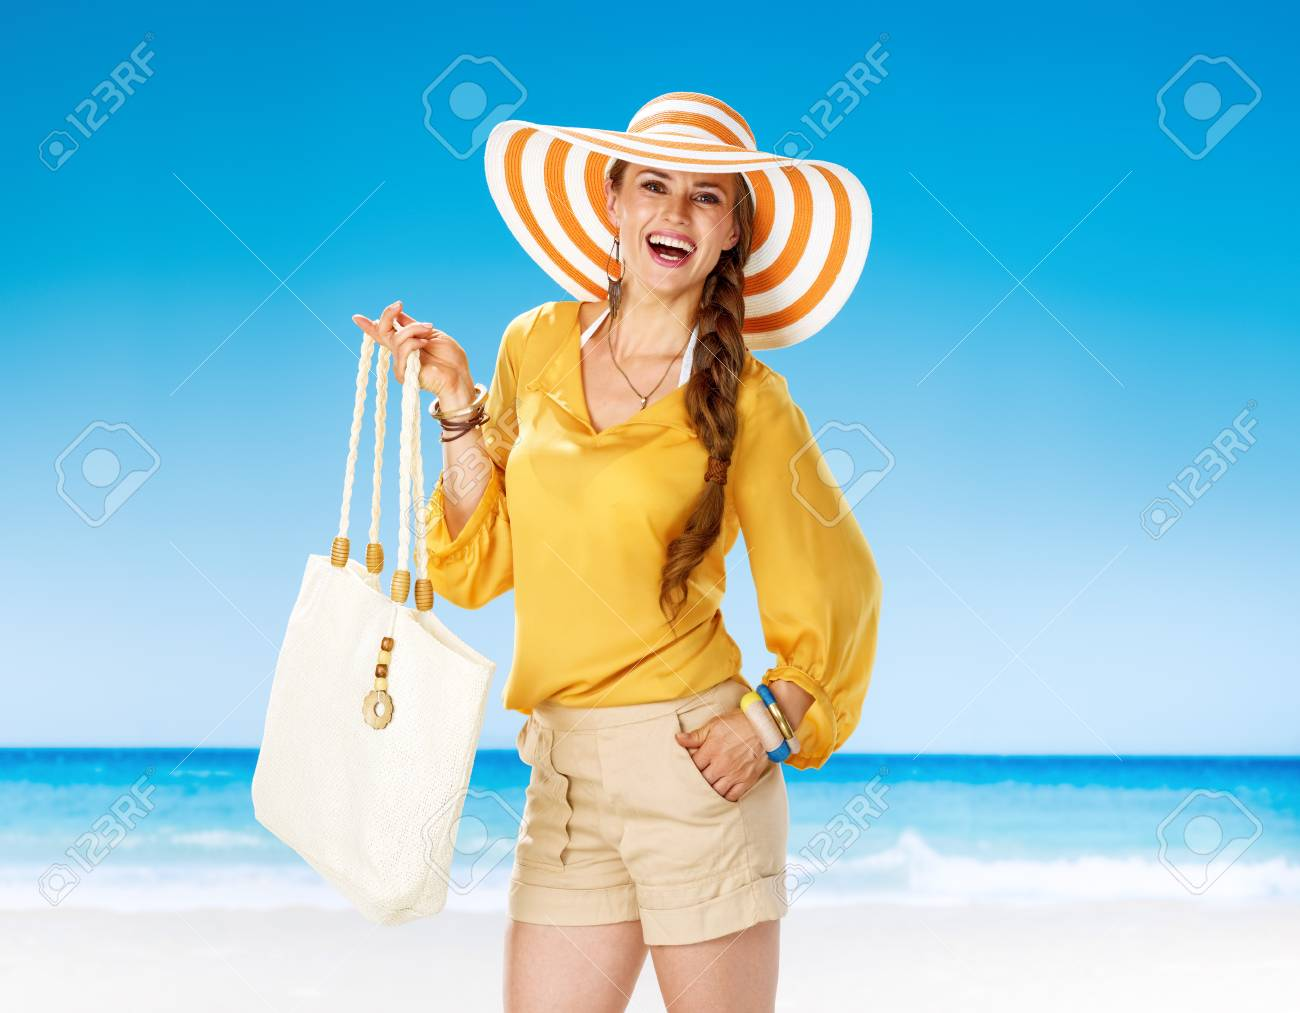 f6c9226b95c Perfect summer. Portrait of happy young woman in shorts and yellow blouse  with white beach